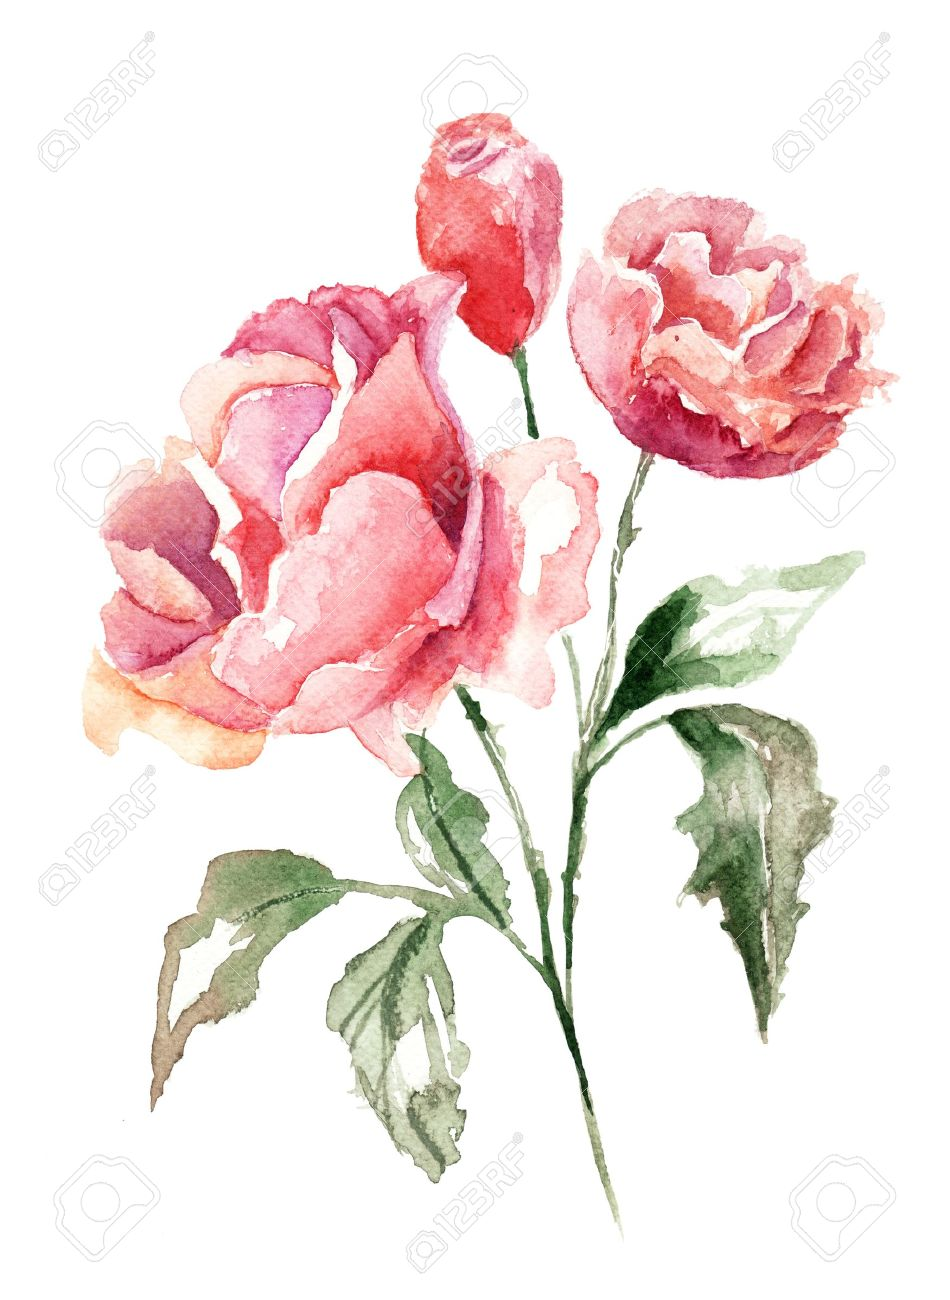 Beautiful flowers watercolor painting stock photo picture and beautiful flowers watercolor painting stock photo 14468172 izmirmasajfo Image collections